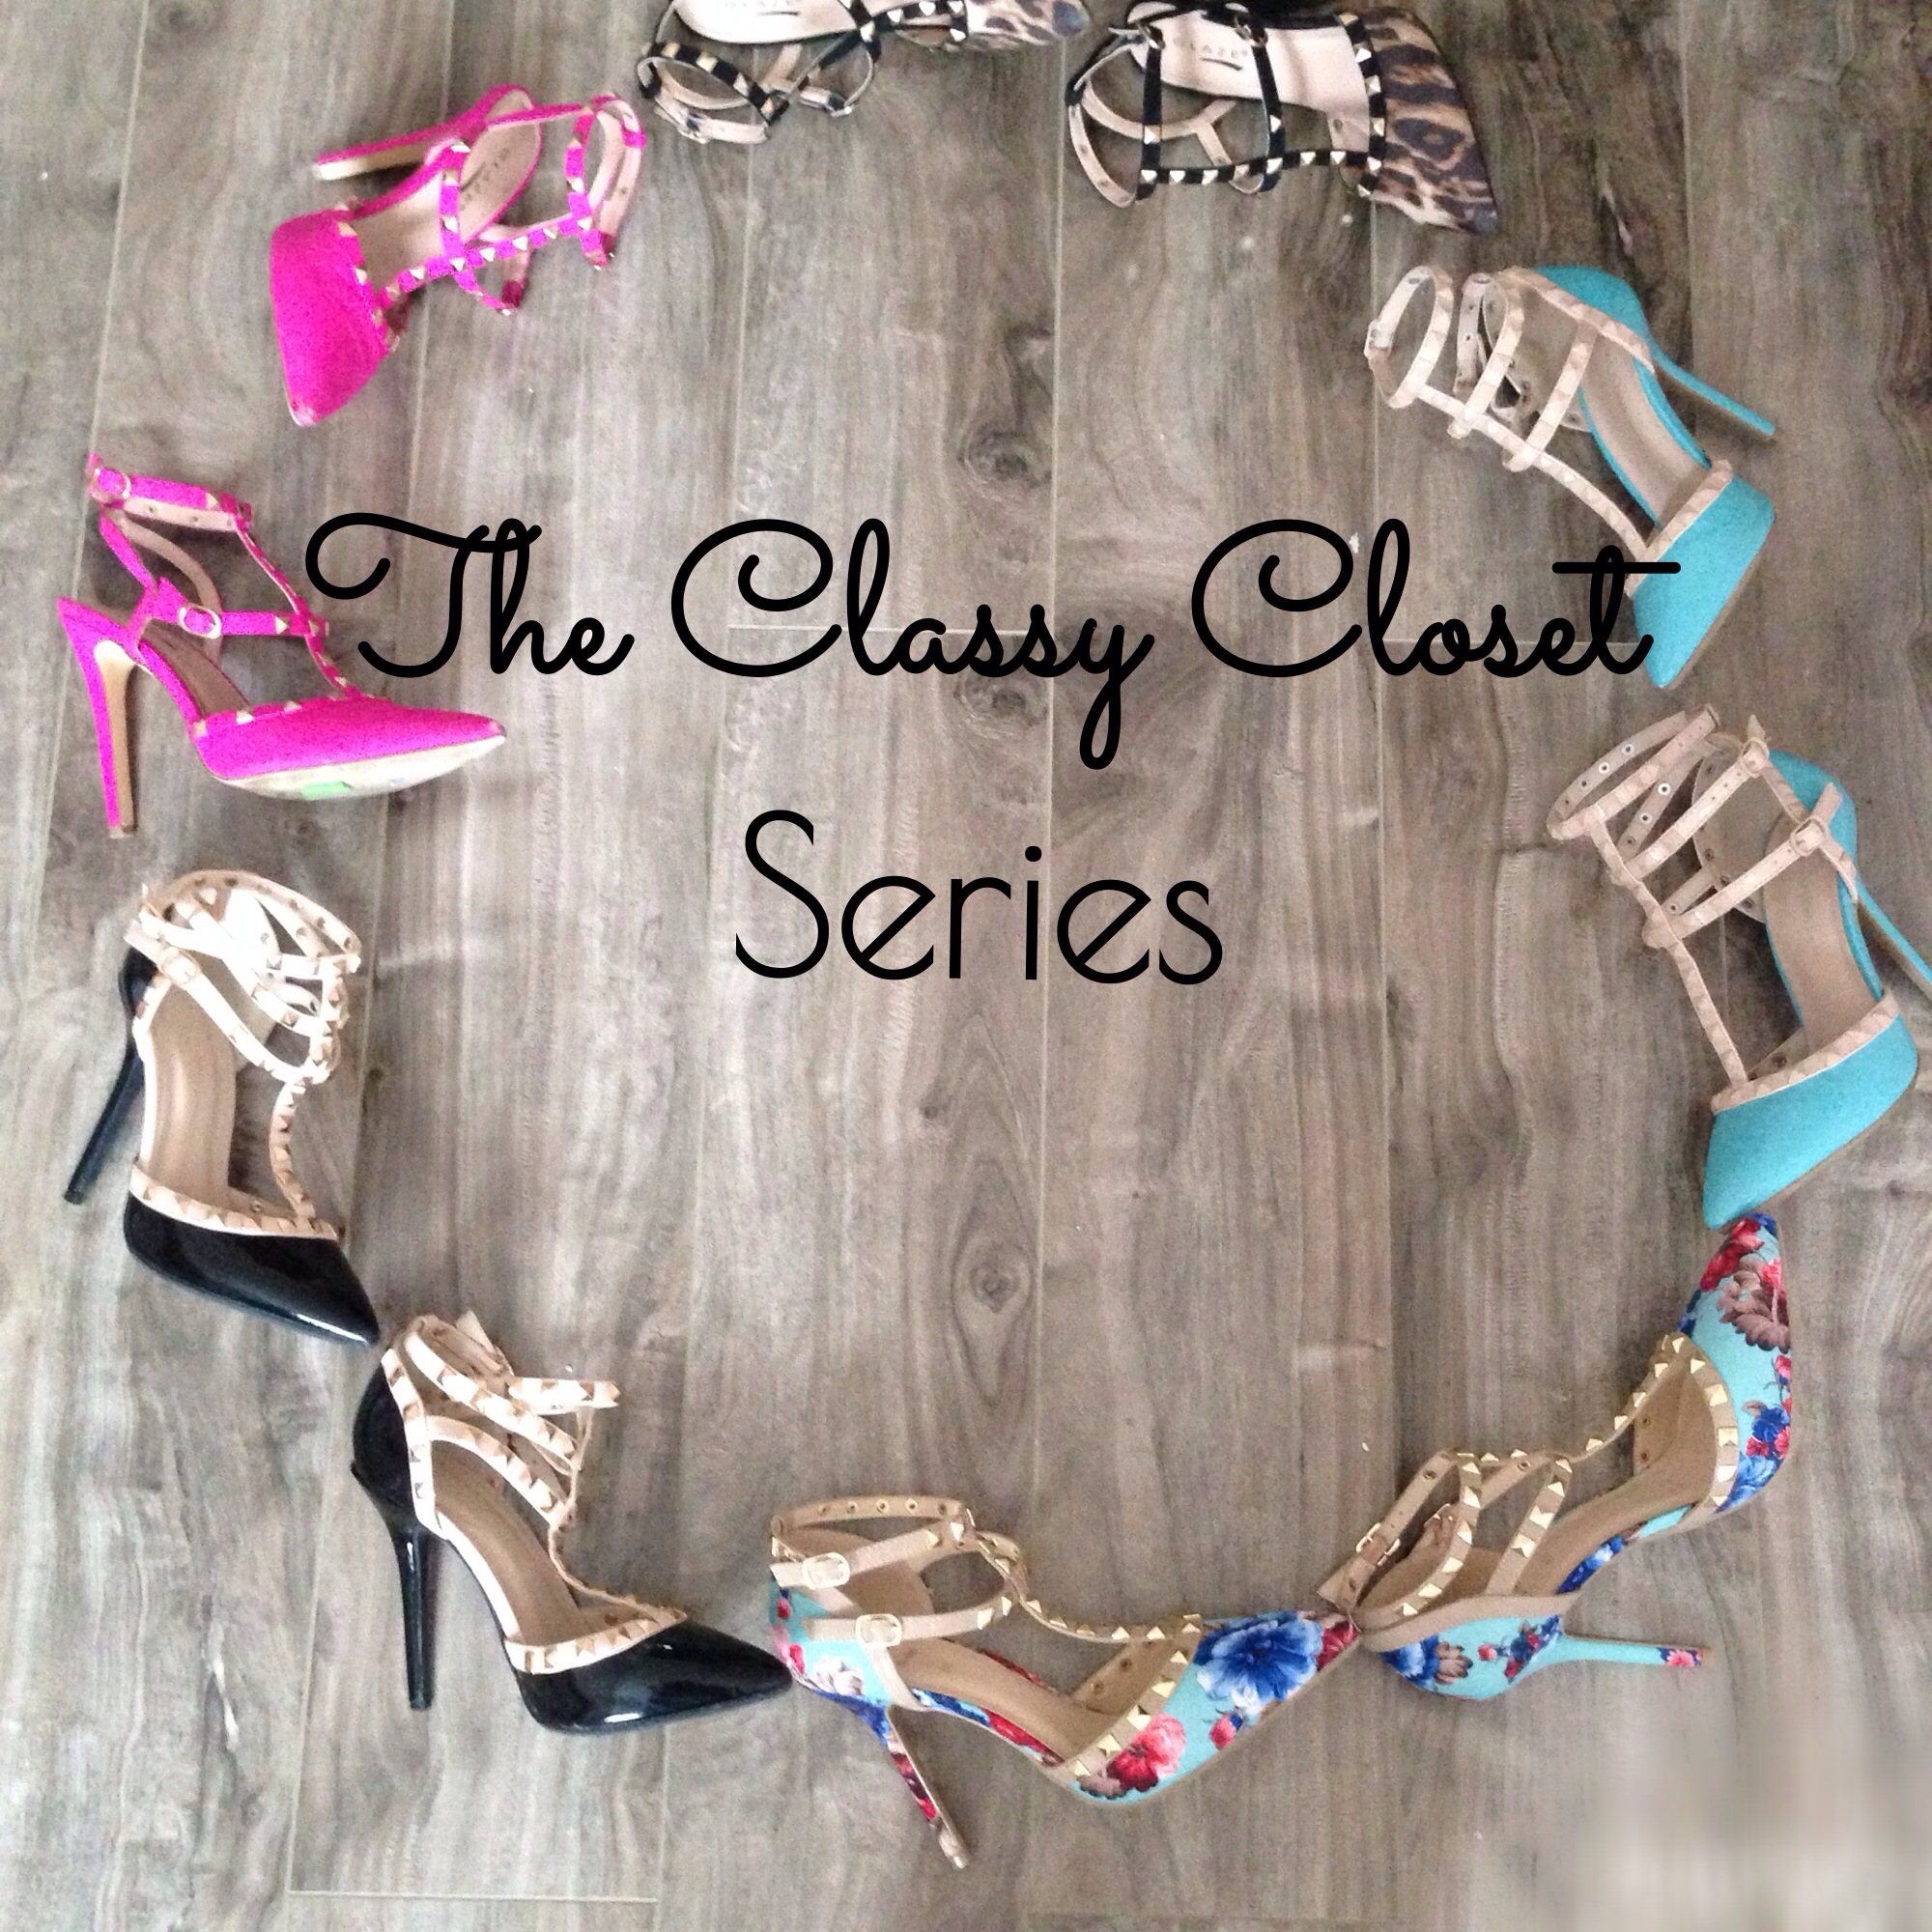 I Am Starting A New Series On The Blog; The Classy Closet Series!